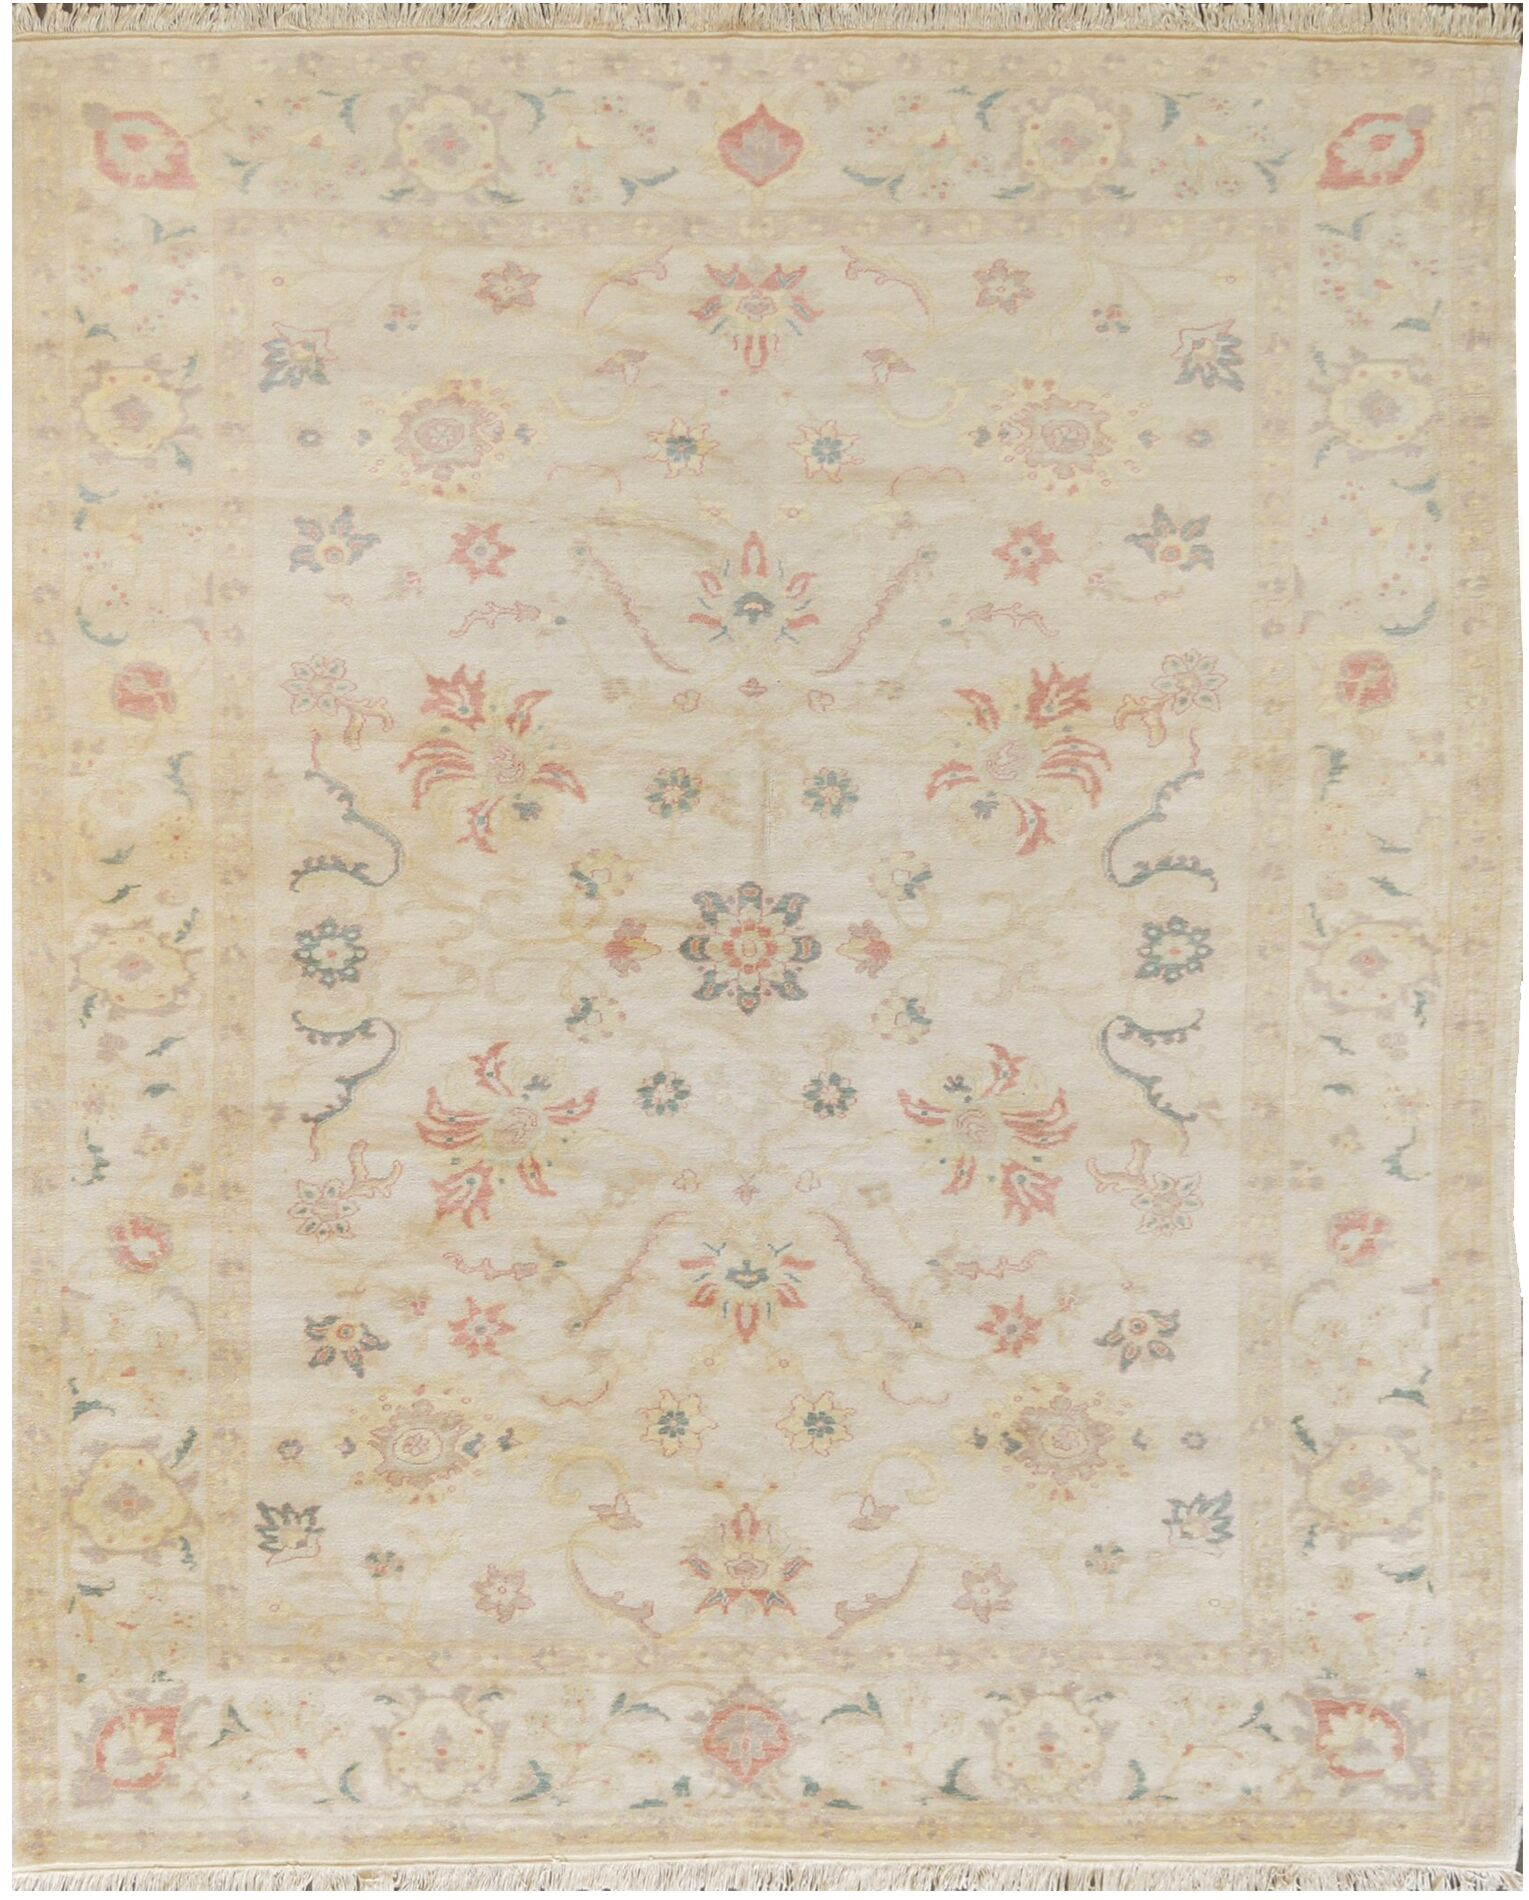 One-of-a-Kind Agra High Quality Hand-Knotted Wool Ivory Indoor Area Rug